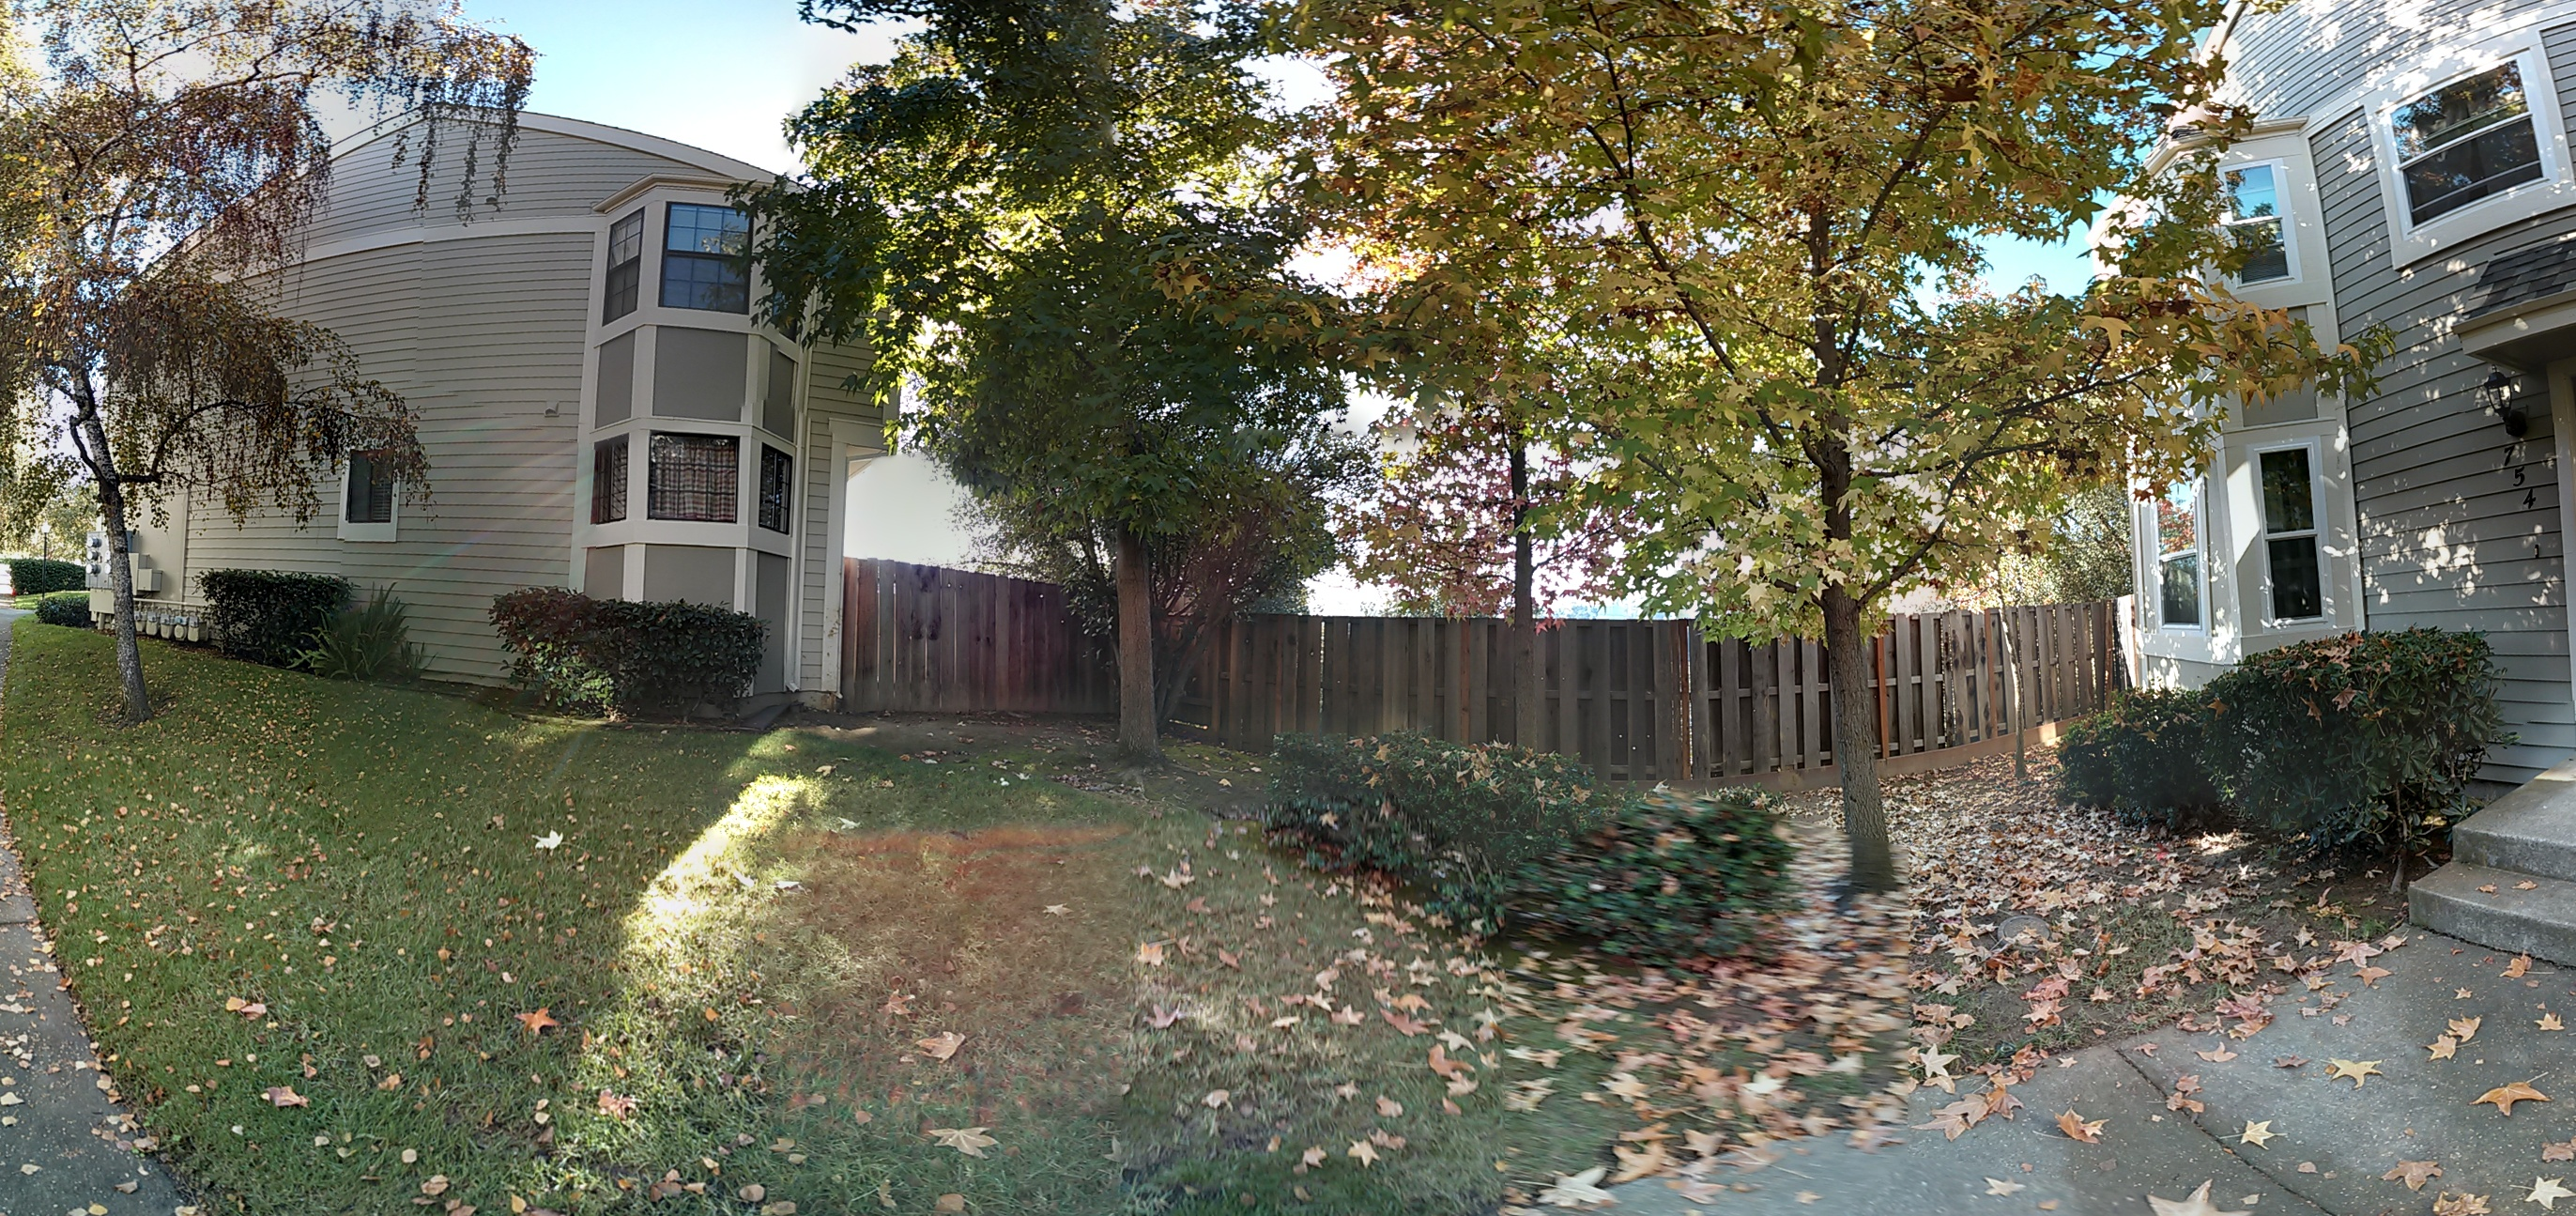 Google's Photo Sphere flattens out the photos into a panorama.